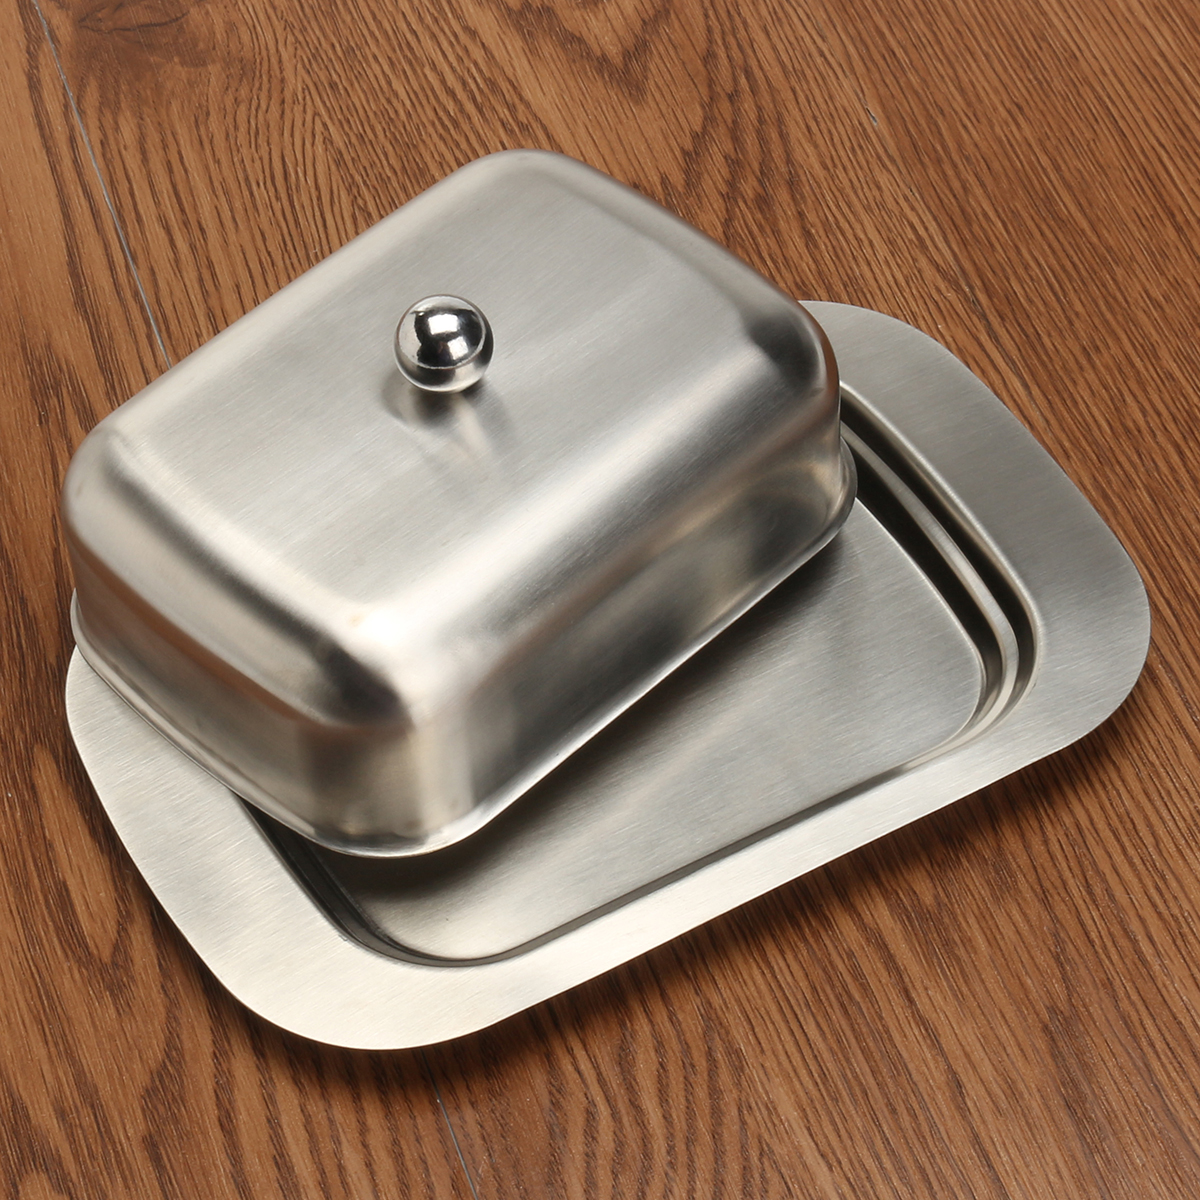 Stainless Steel Butter Cheese Dish Serving Tray Storage Container with Handle Lid